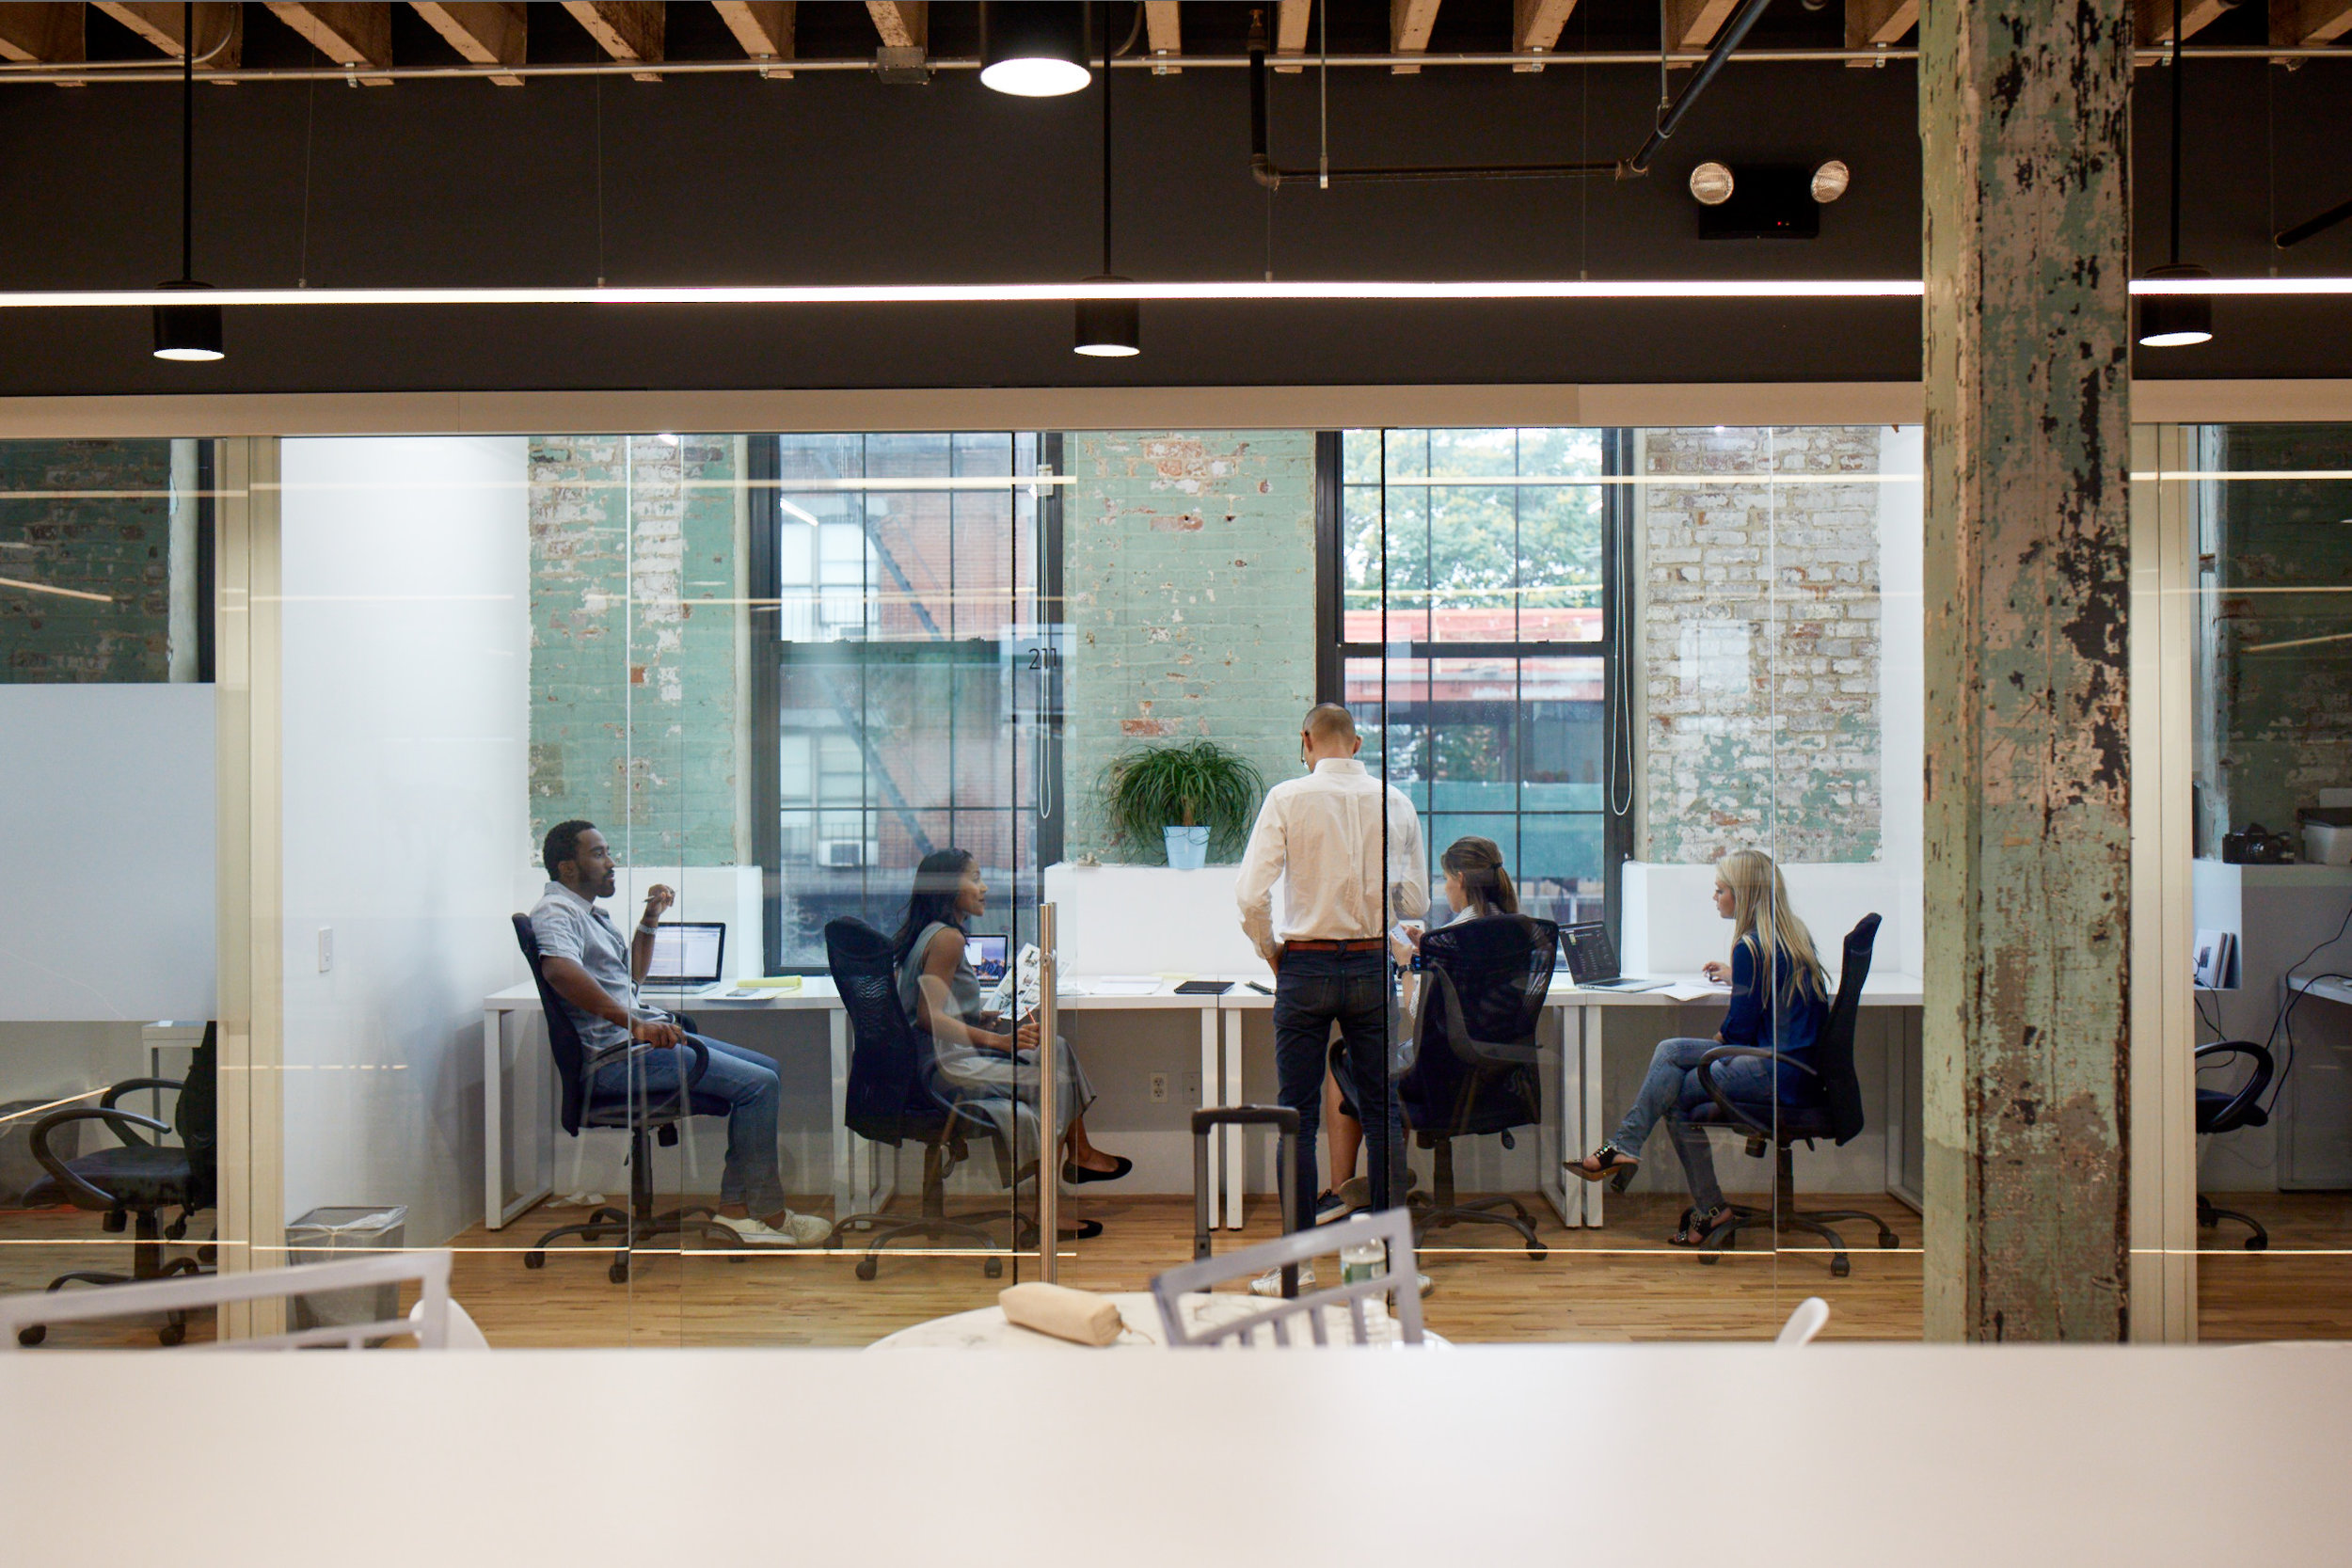 Coworkers having a meeting in a collaborative workspace